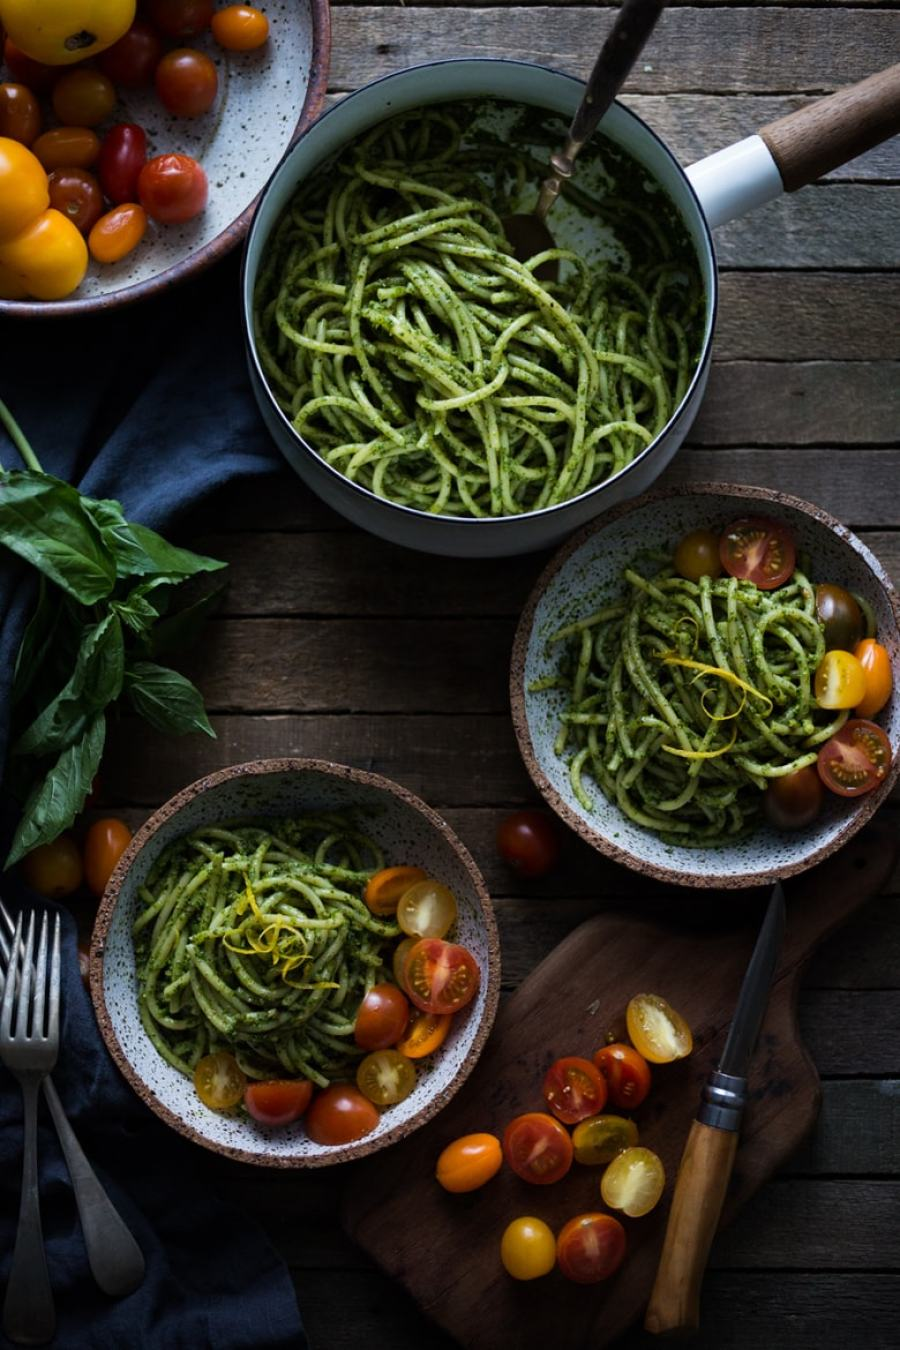 Bucatini Pasta with Arugula Almond Pesto & Heirloom Tomatoes